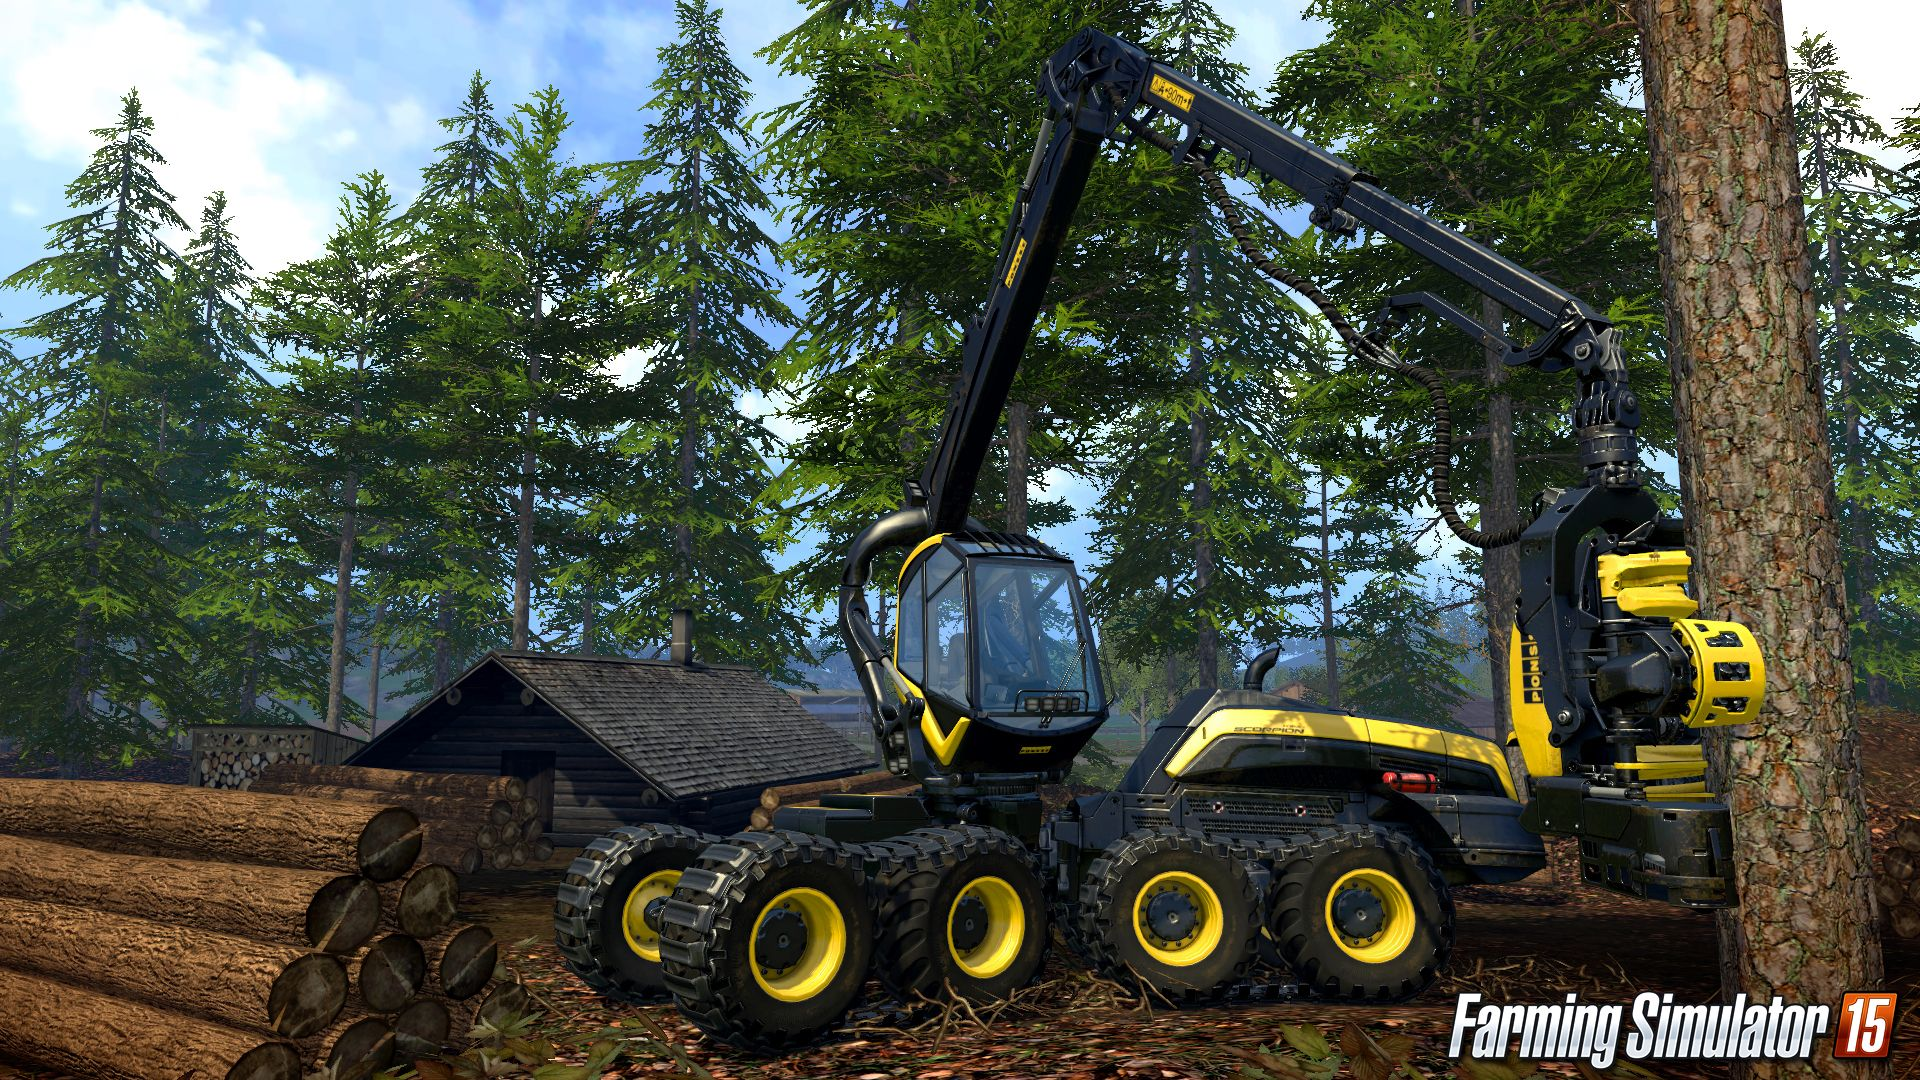 Демо версия Farming Simulator 2015, Farming Simulator 15